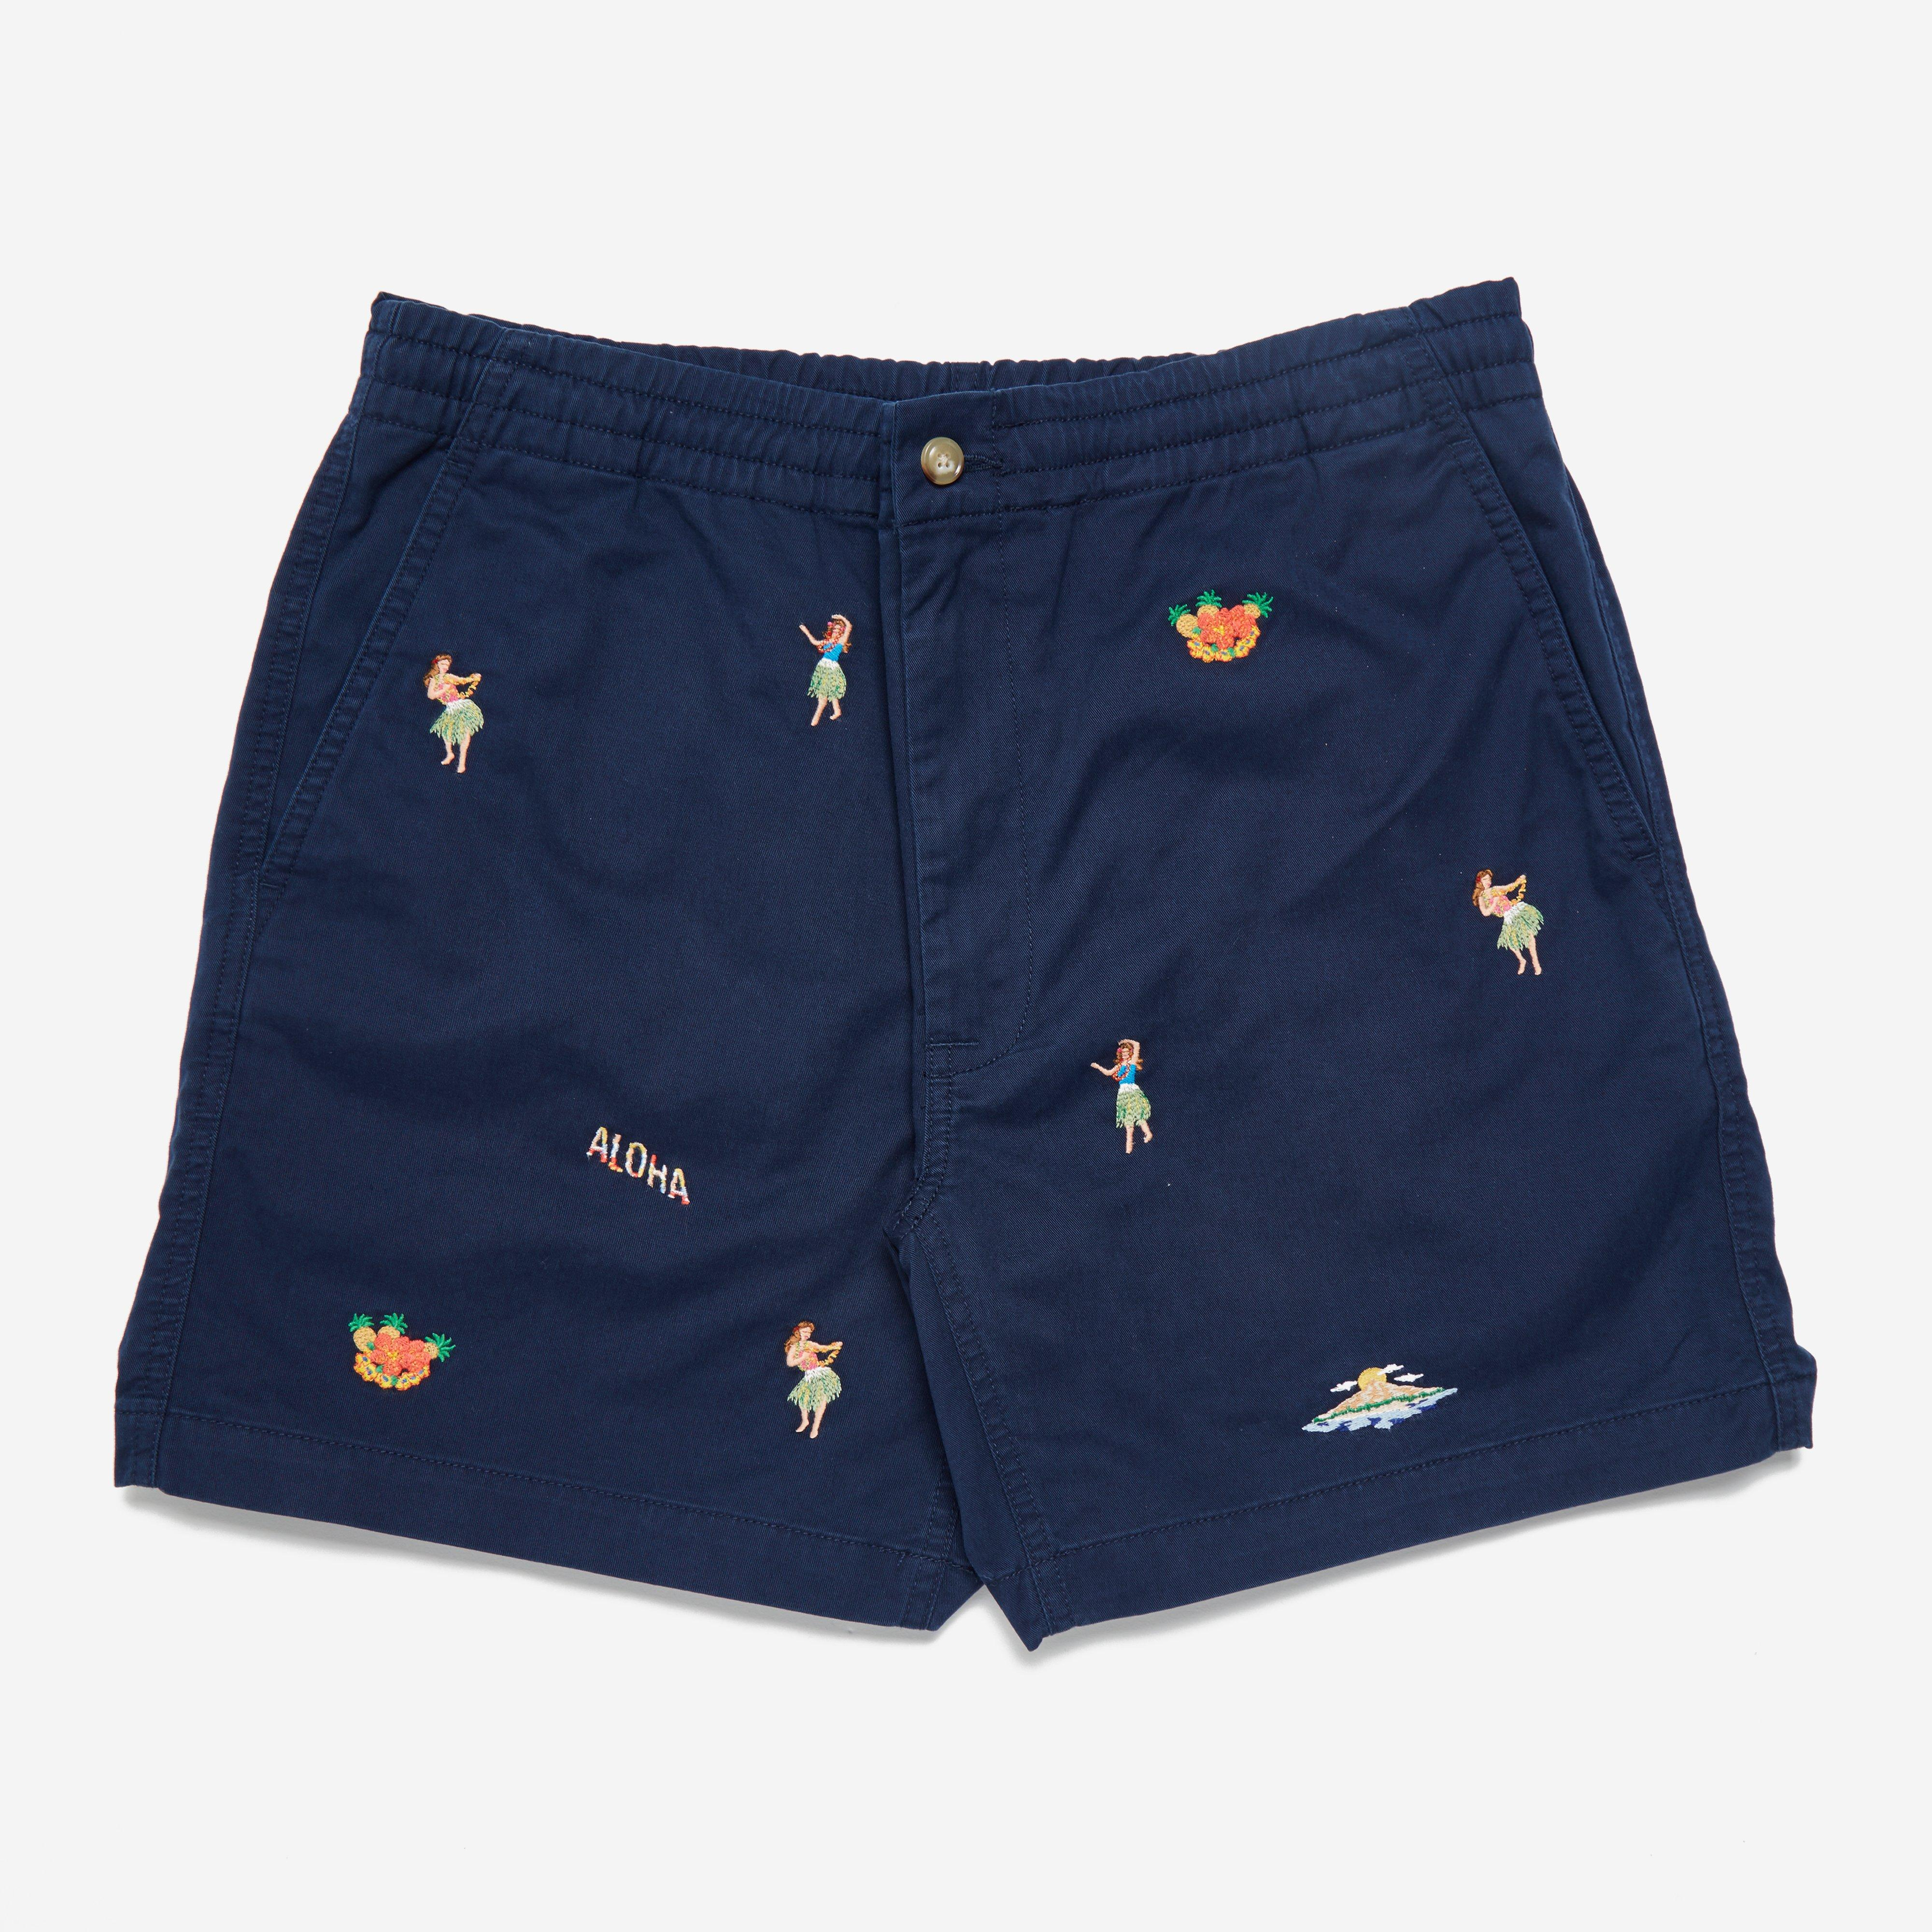 Polo Ralph Lauren Embroided Chino Short